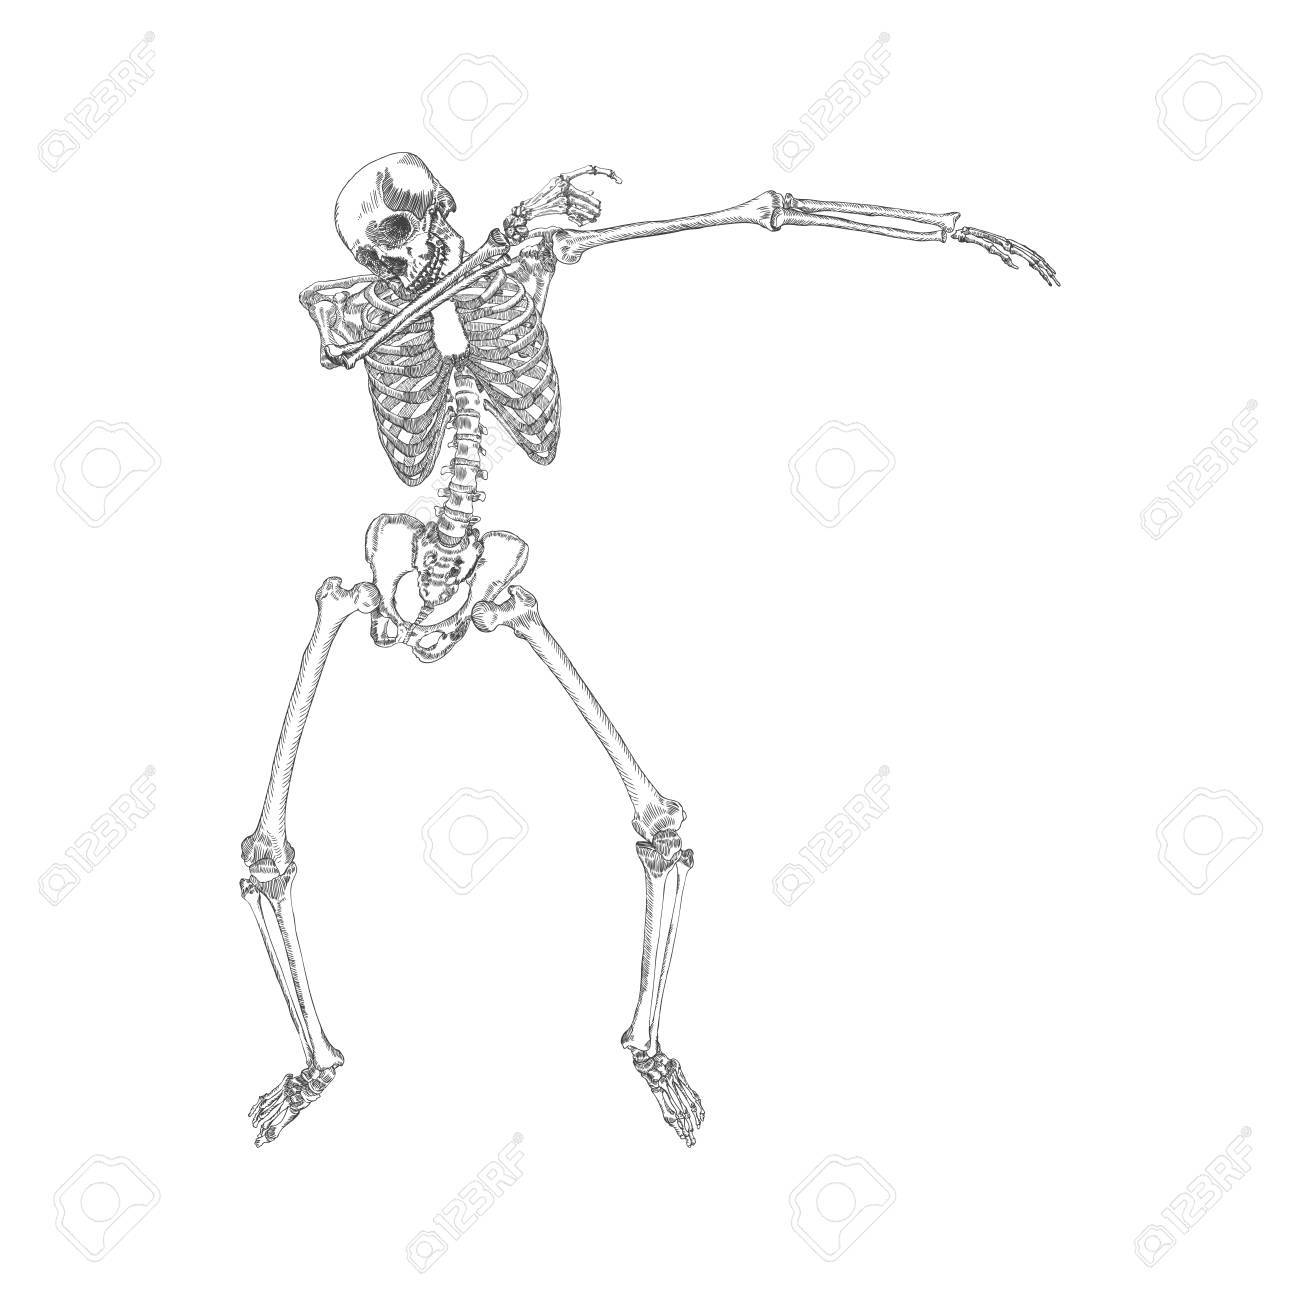 human skeleton making dab perform dabbing dance move gesture